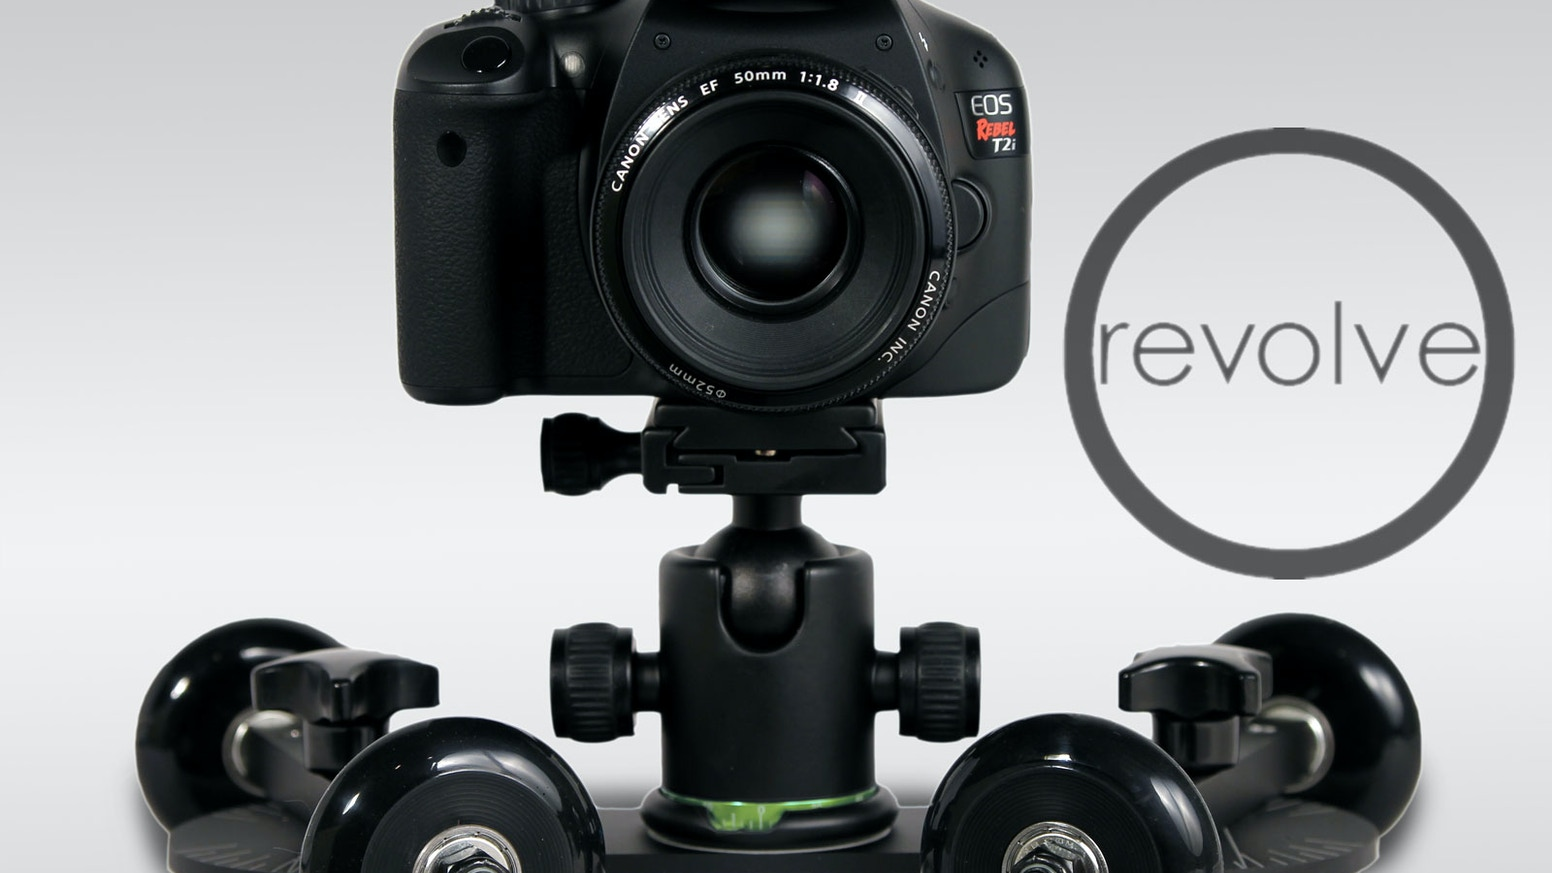 The REVOLVE is a tool for creating fluid and dynamic video footage; compatible with all cameras and affordable to all film-makers.